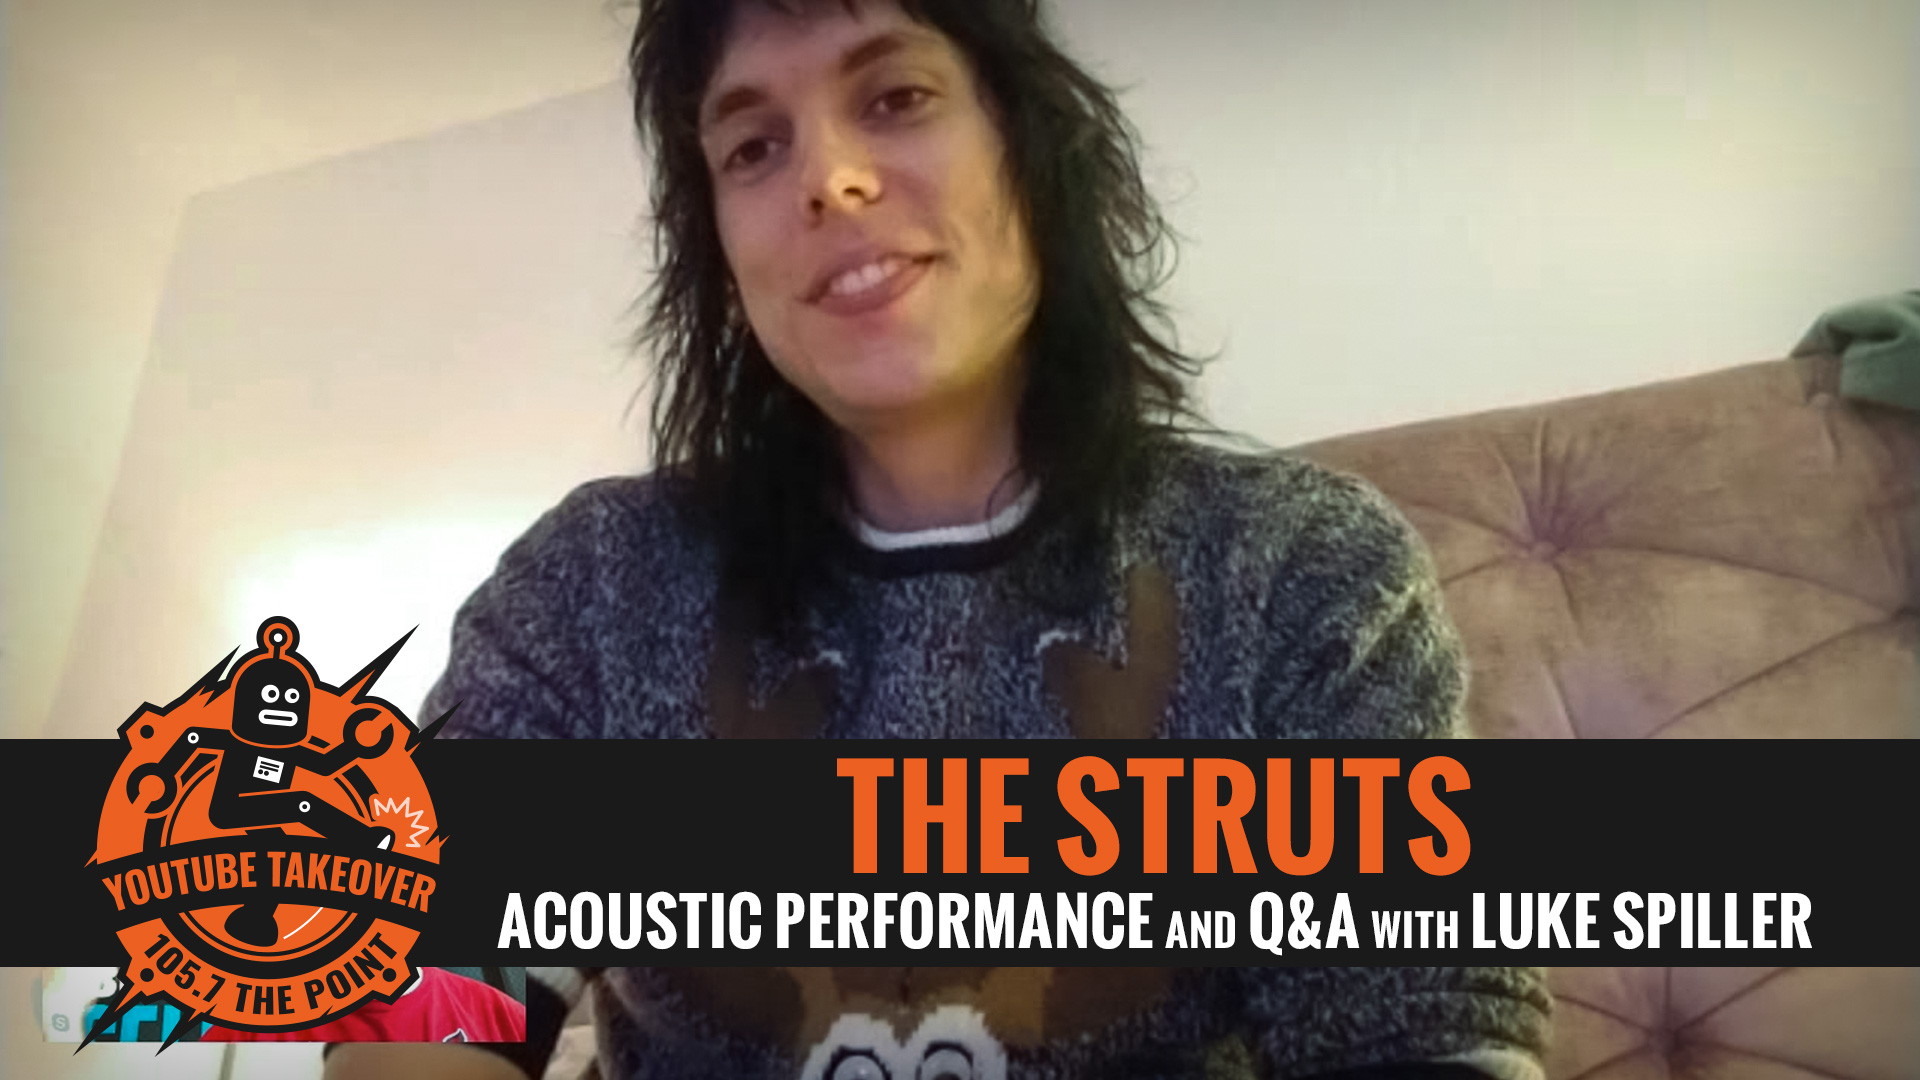 THE STRUTS! Live Q&A with LUKE SPILLER